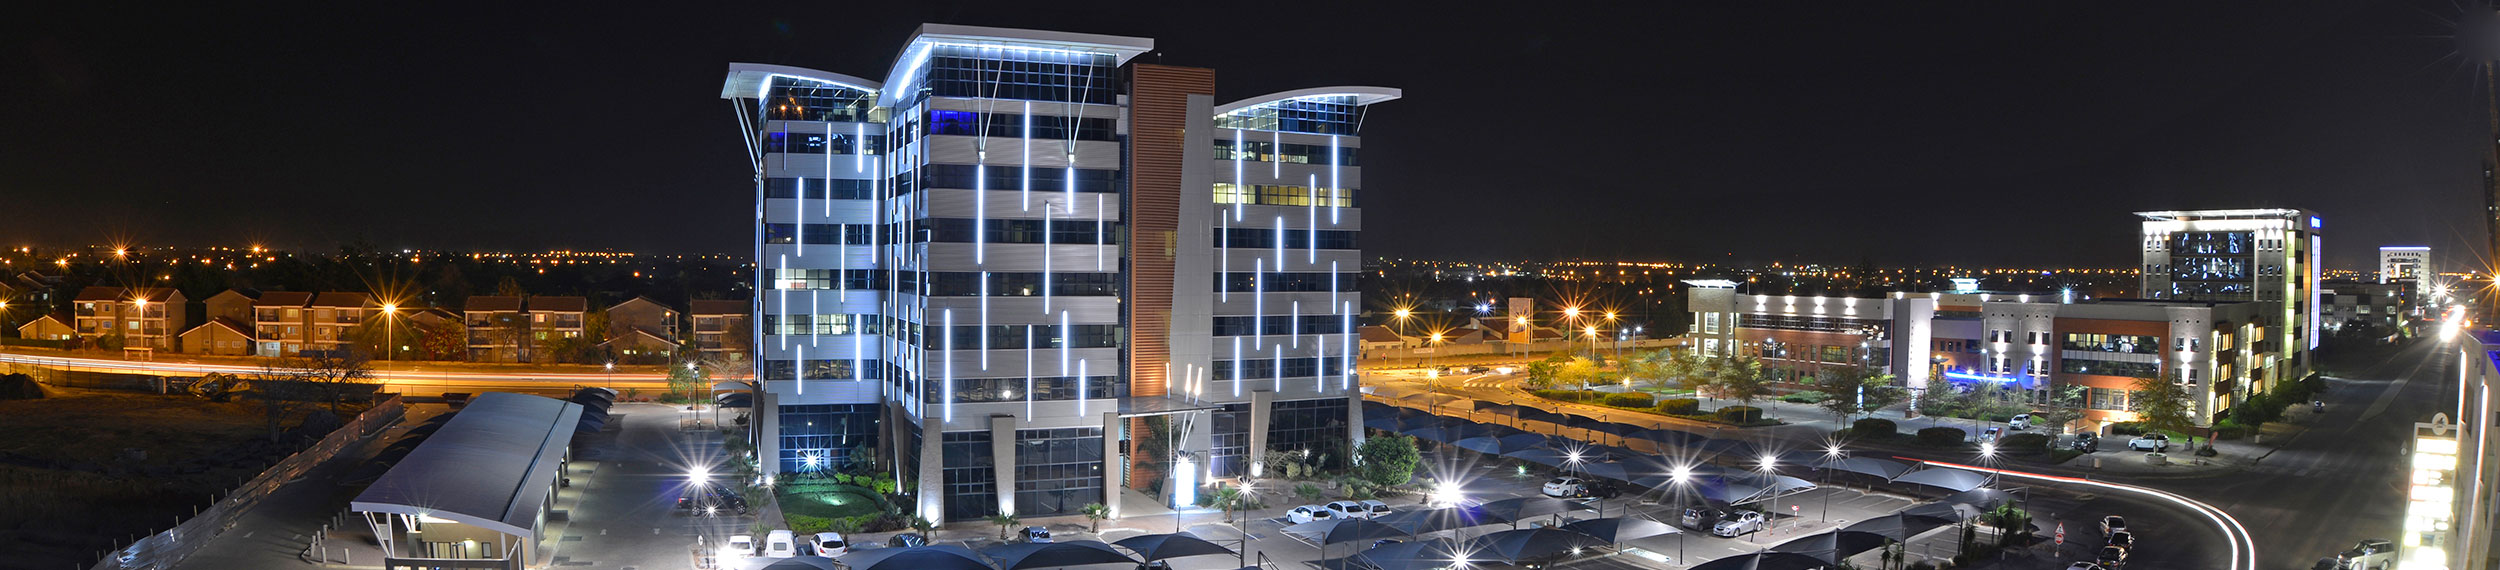 View of Gaborone city center in Botswana.